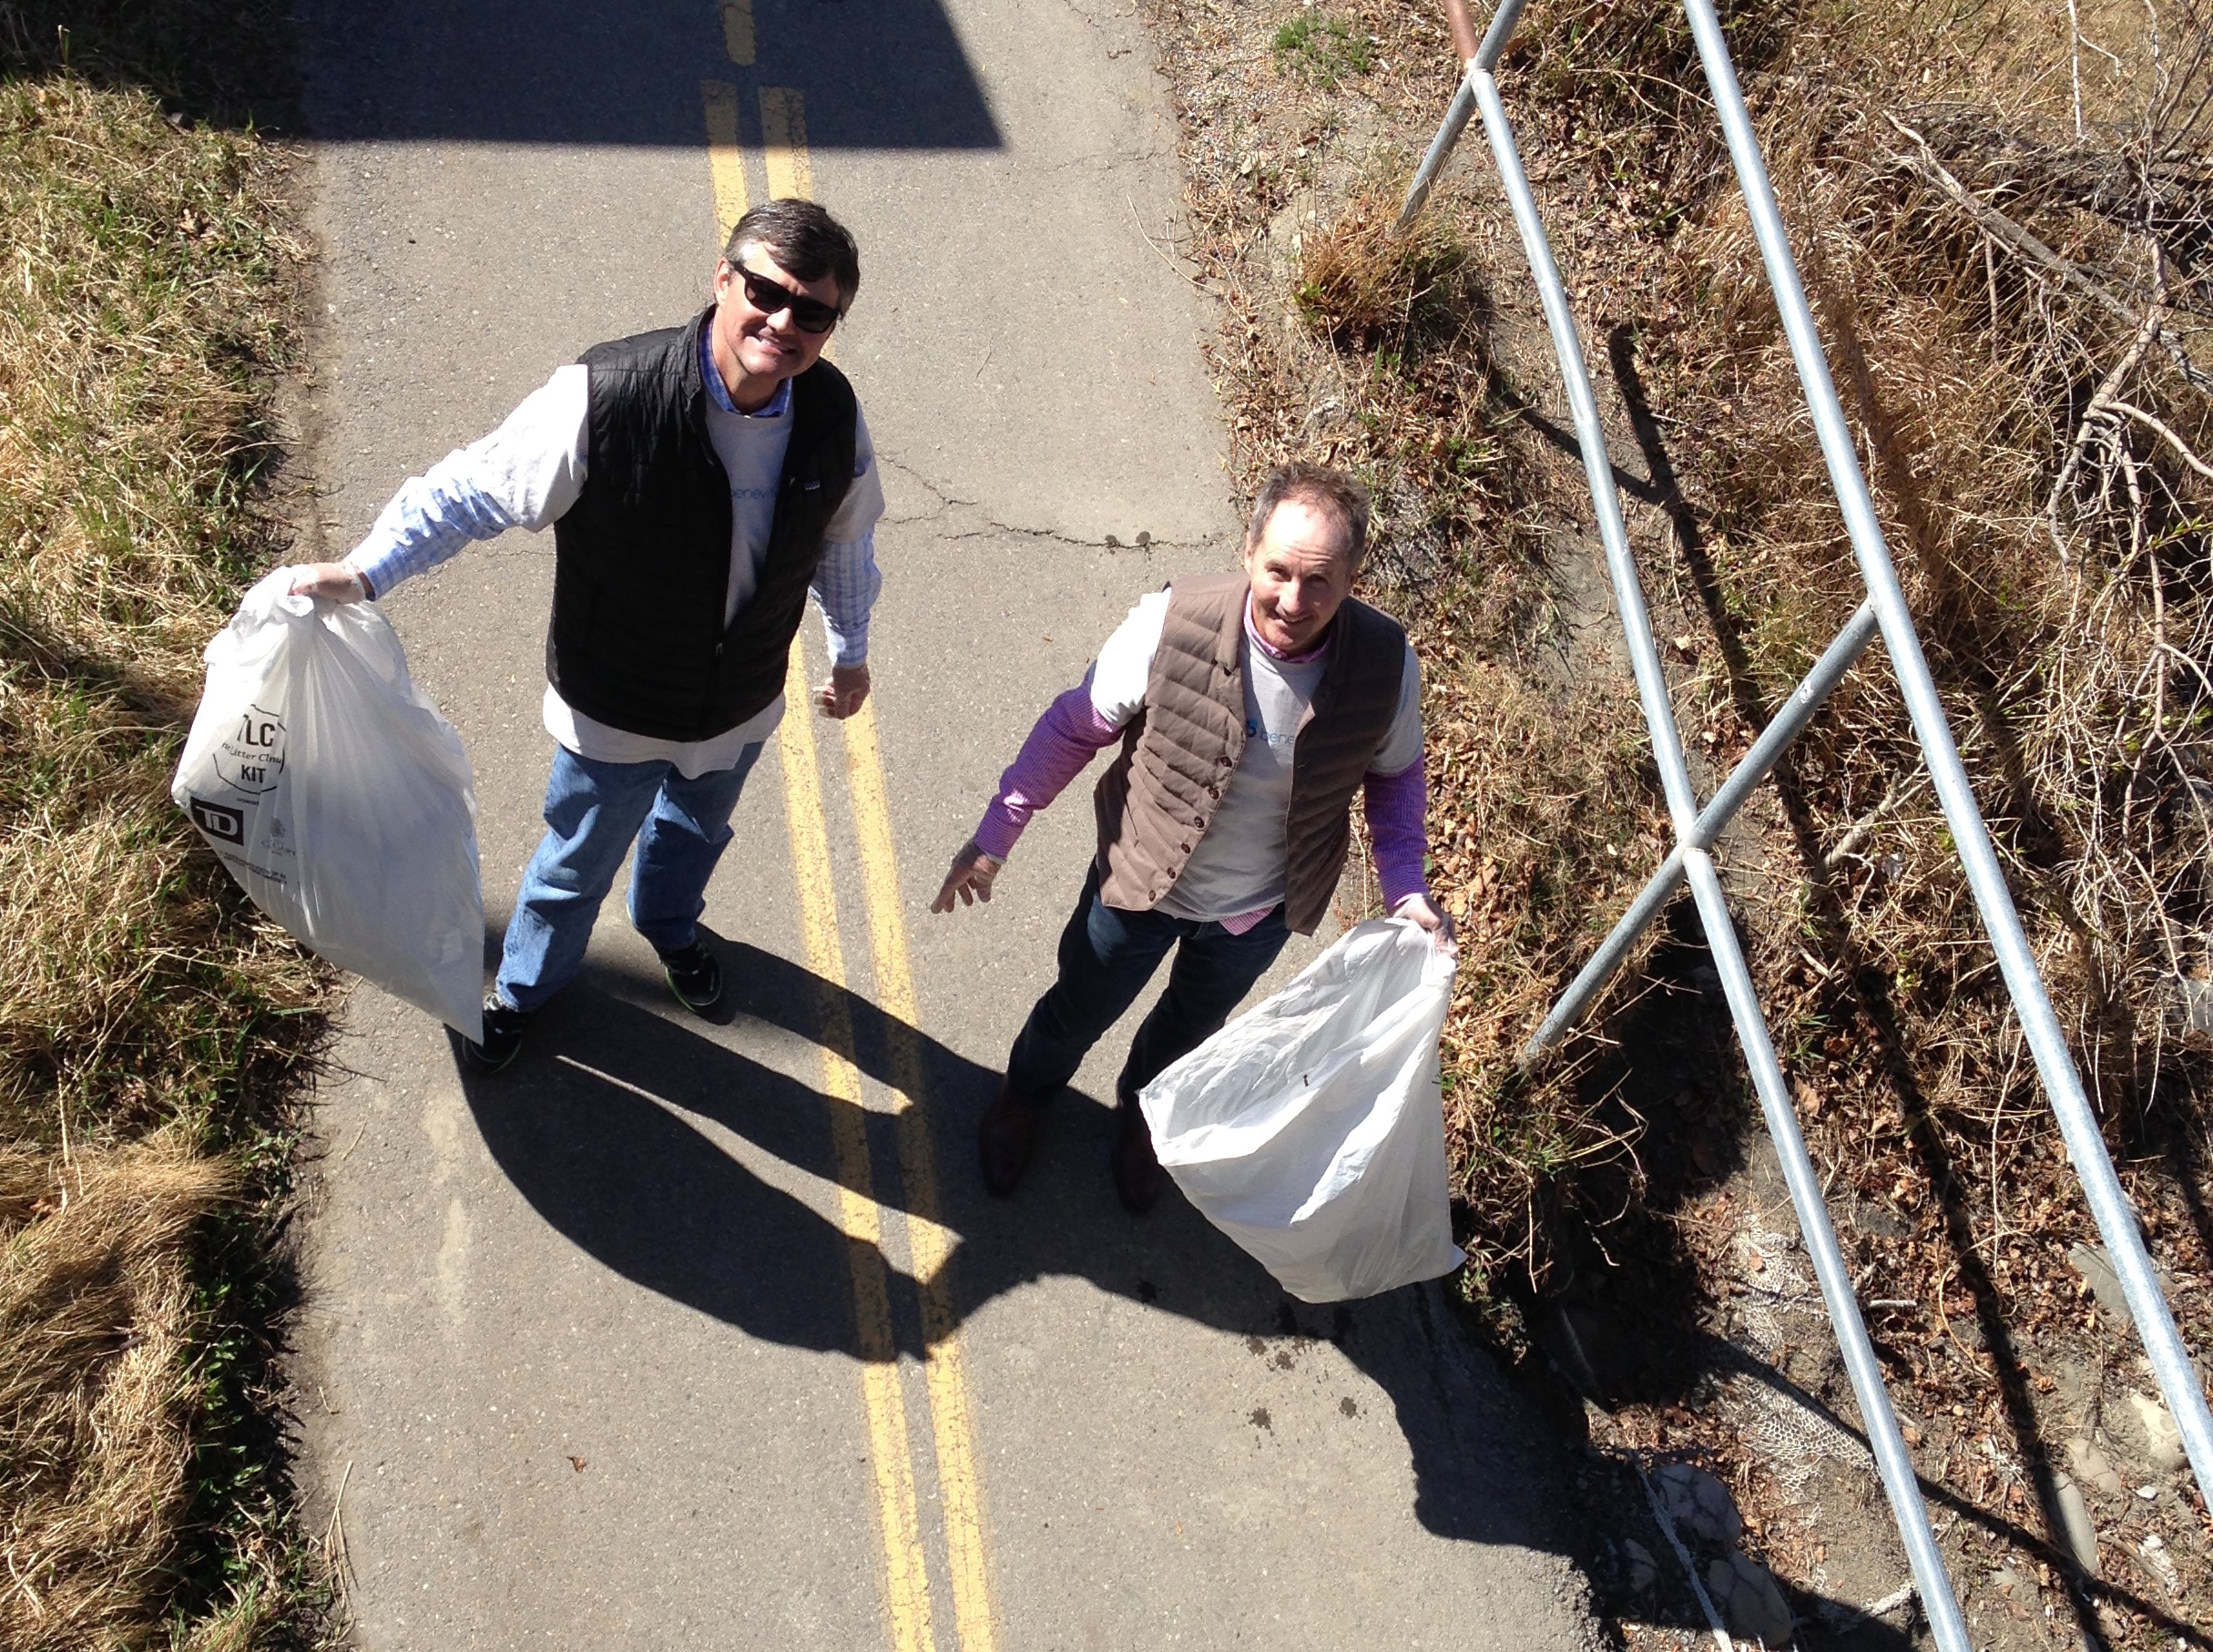 Bryan de Lottinville, Founder & CEO of Benevity, and Andy Howell, COO of Benevity, picking up garbage in Calgary, AB